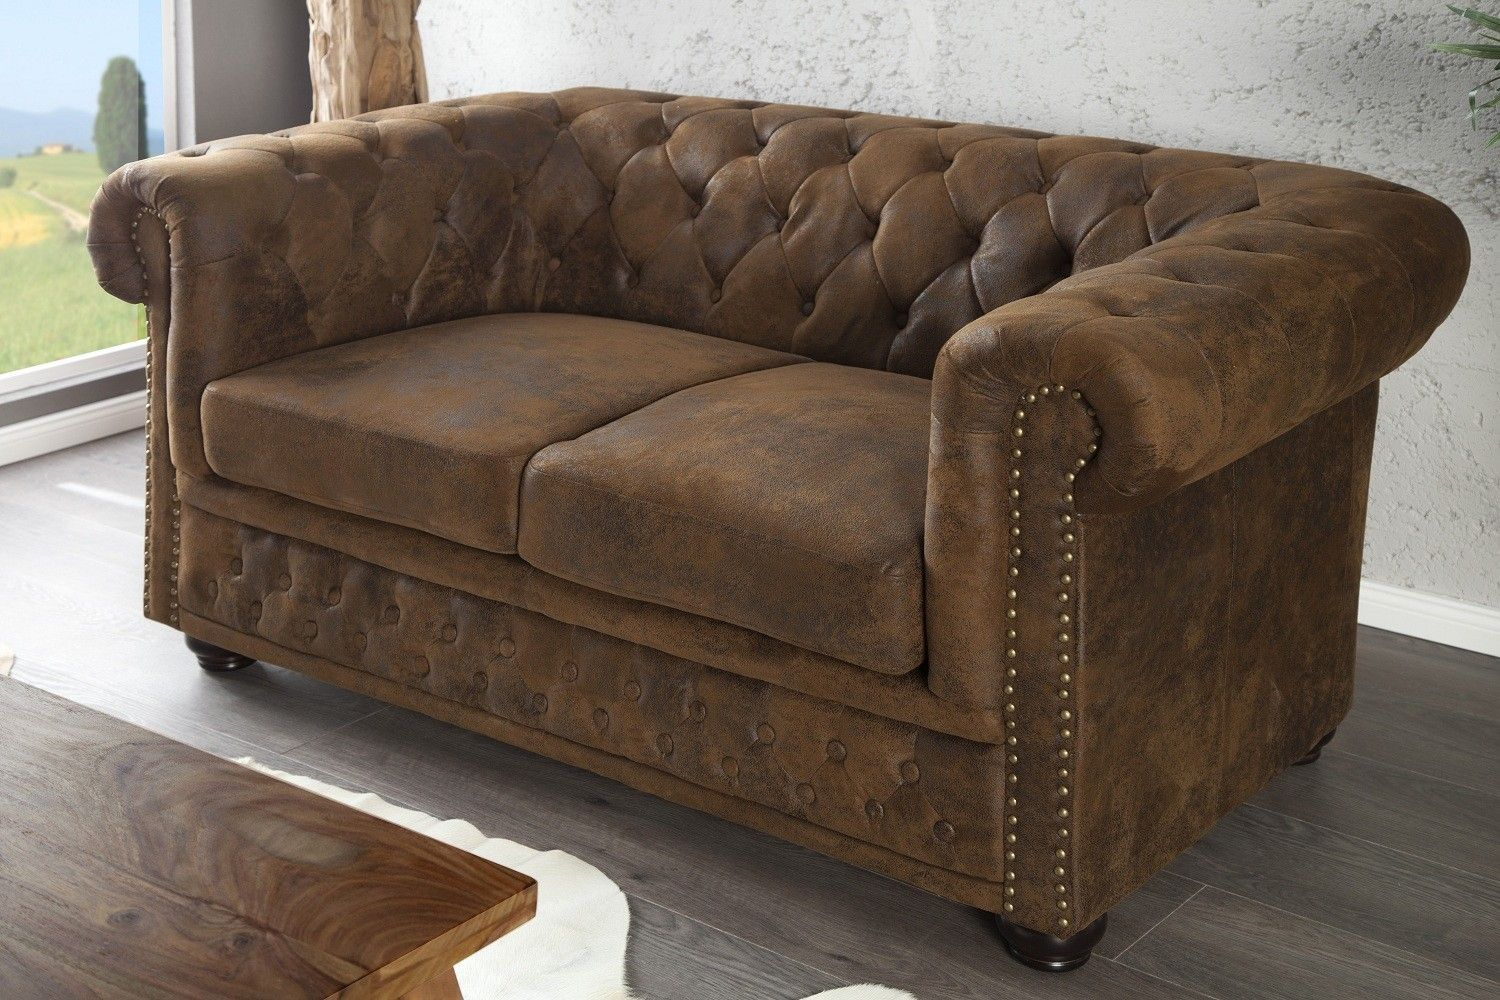 Chesterfield Sofa Hochlehner Pin By Амелин Д А On Честерфилд Pinterest Canapes And